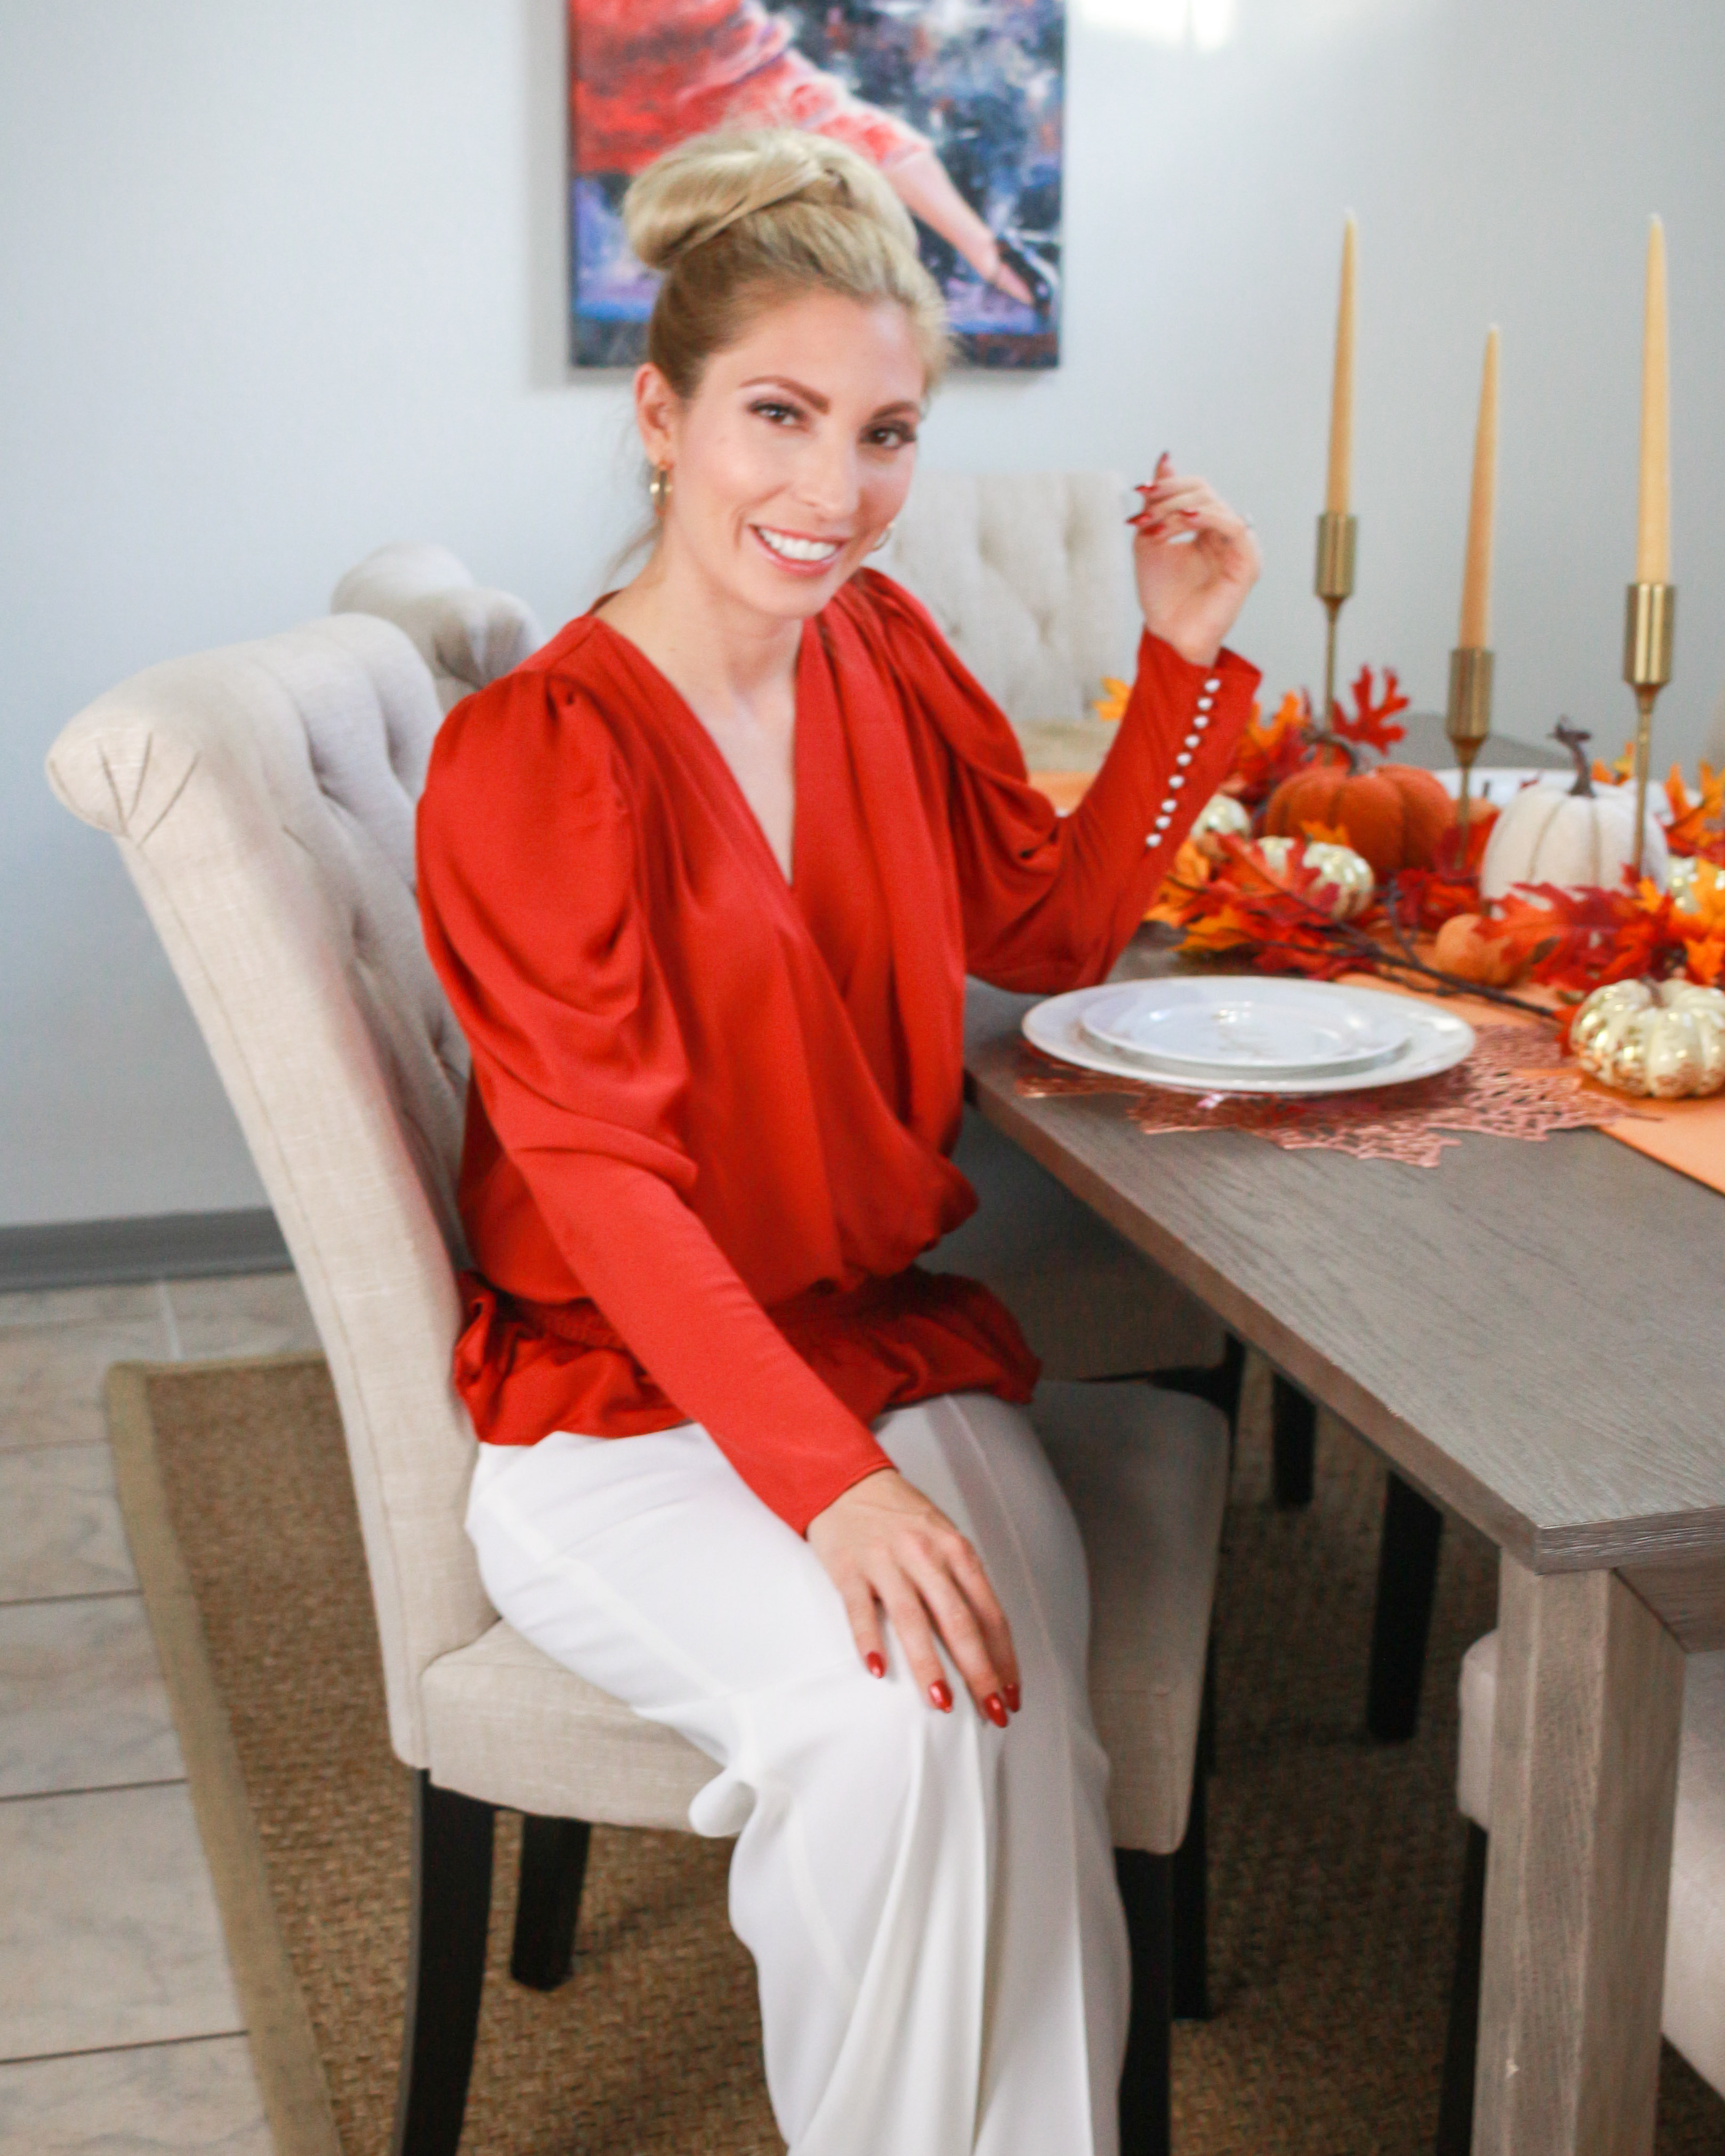 BEAUTIFUL FALL TABLE DECOR 13 THANKSGIVING OUTFIT IDEAS